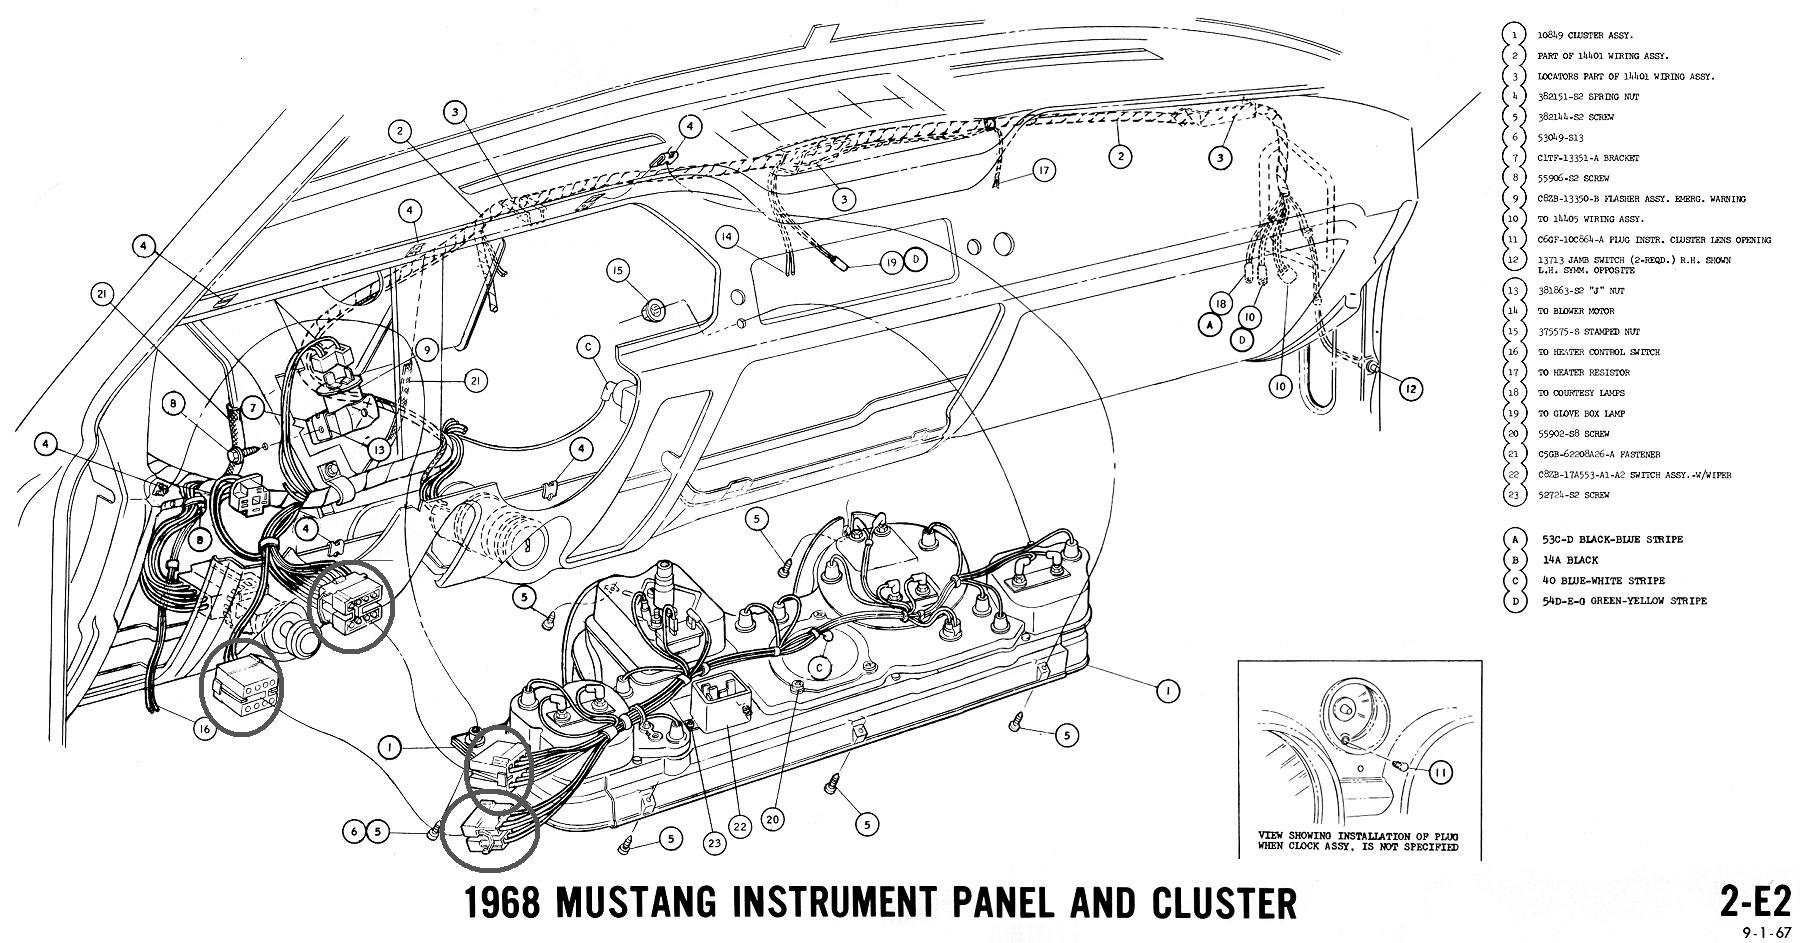 electrical help needed for 1968 mustang ford mustang forum click image for larger version instrument panel2 jpg views 7079 size